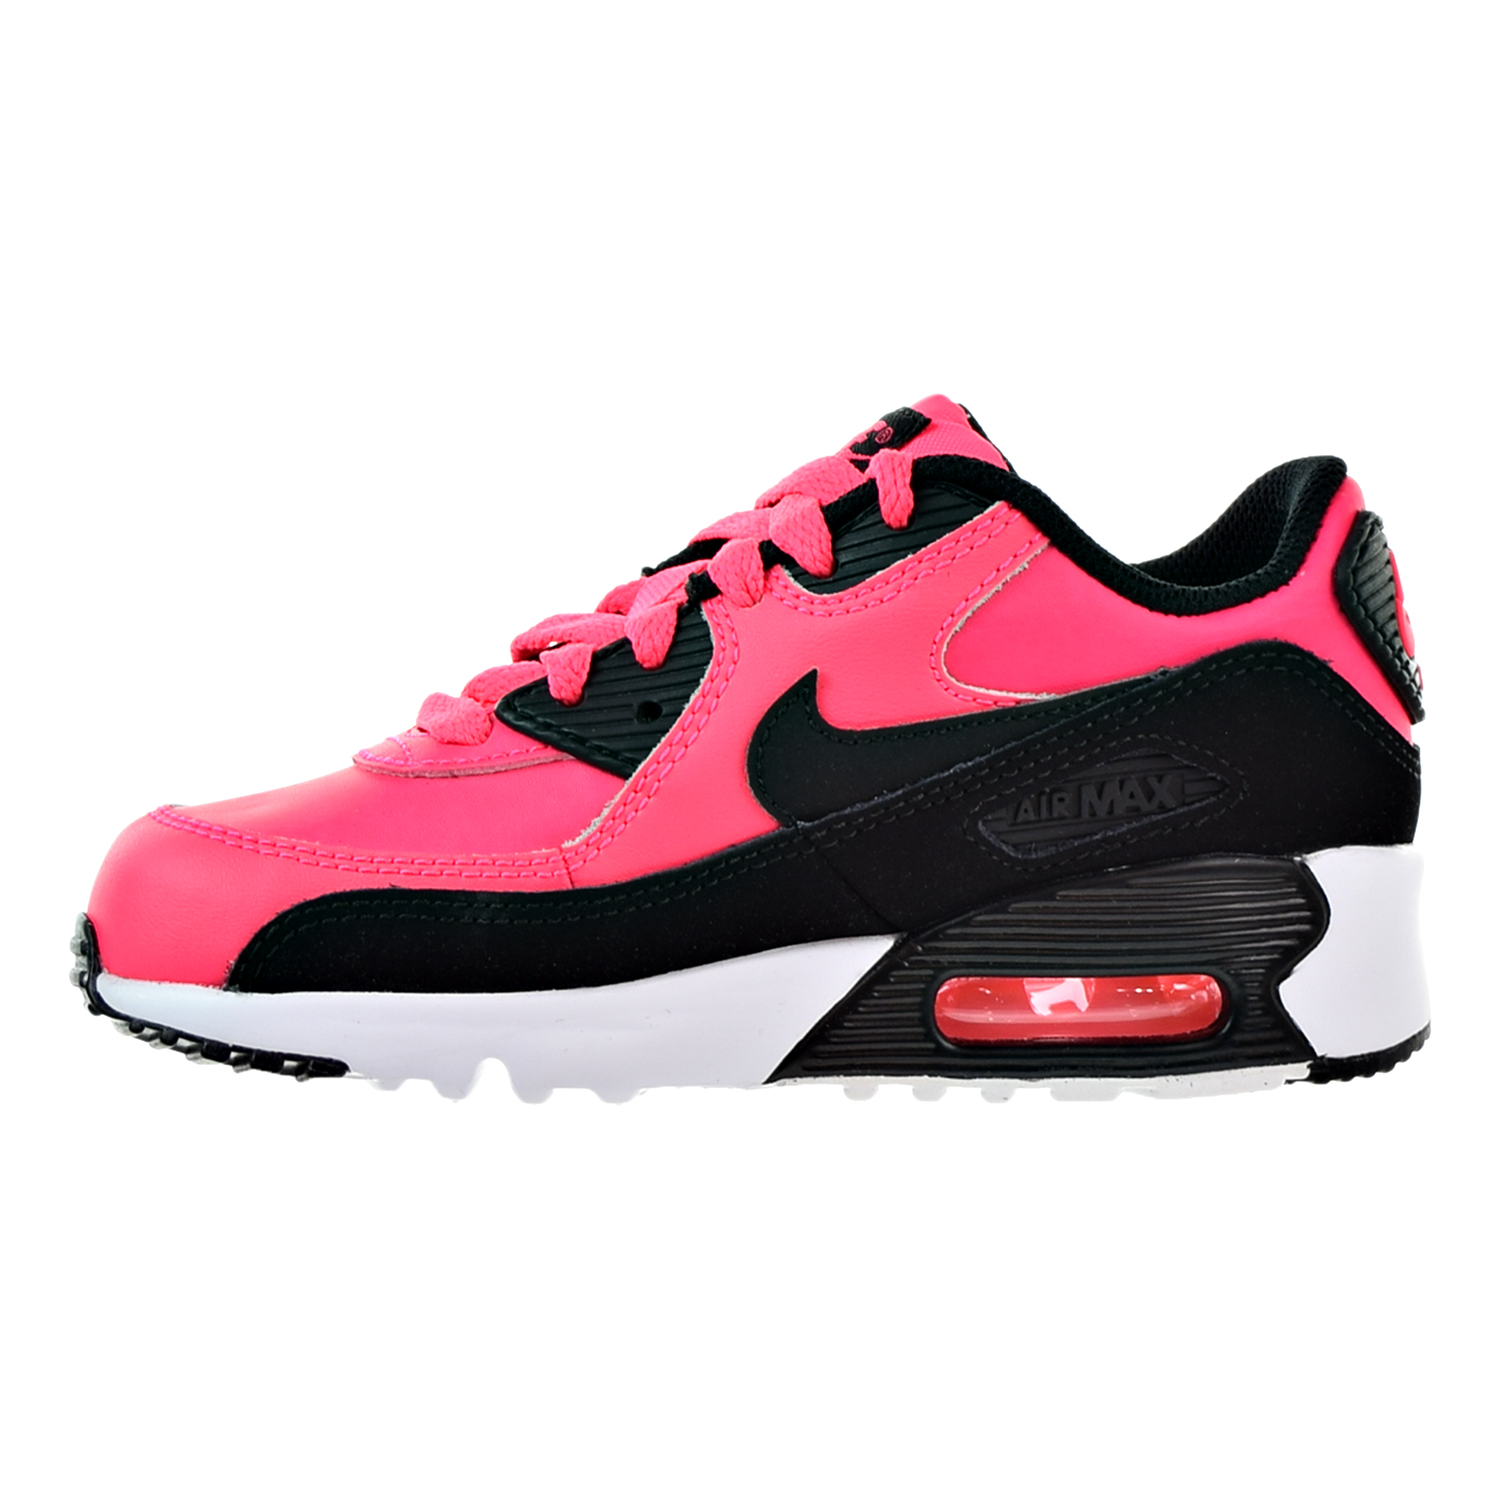 Nike Air Max 90 Leather Little Kid's Shoes Racer Pink/Black/White 833377-600